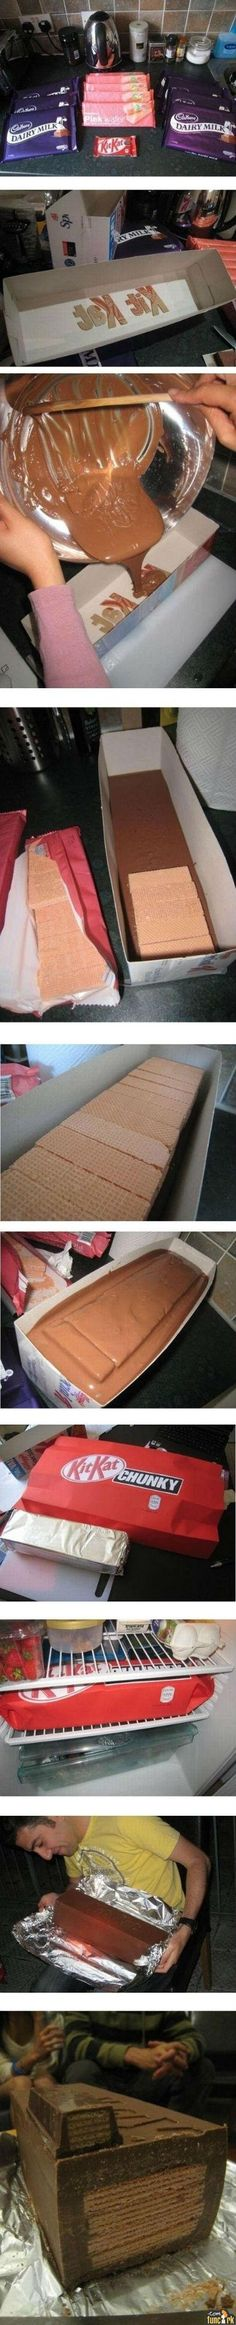 PICTURE: How to make a LIFE SIZED Kit-Kat